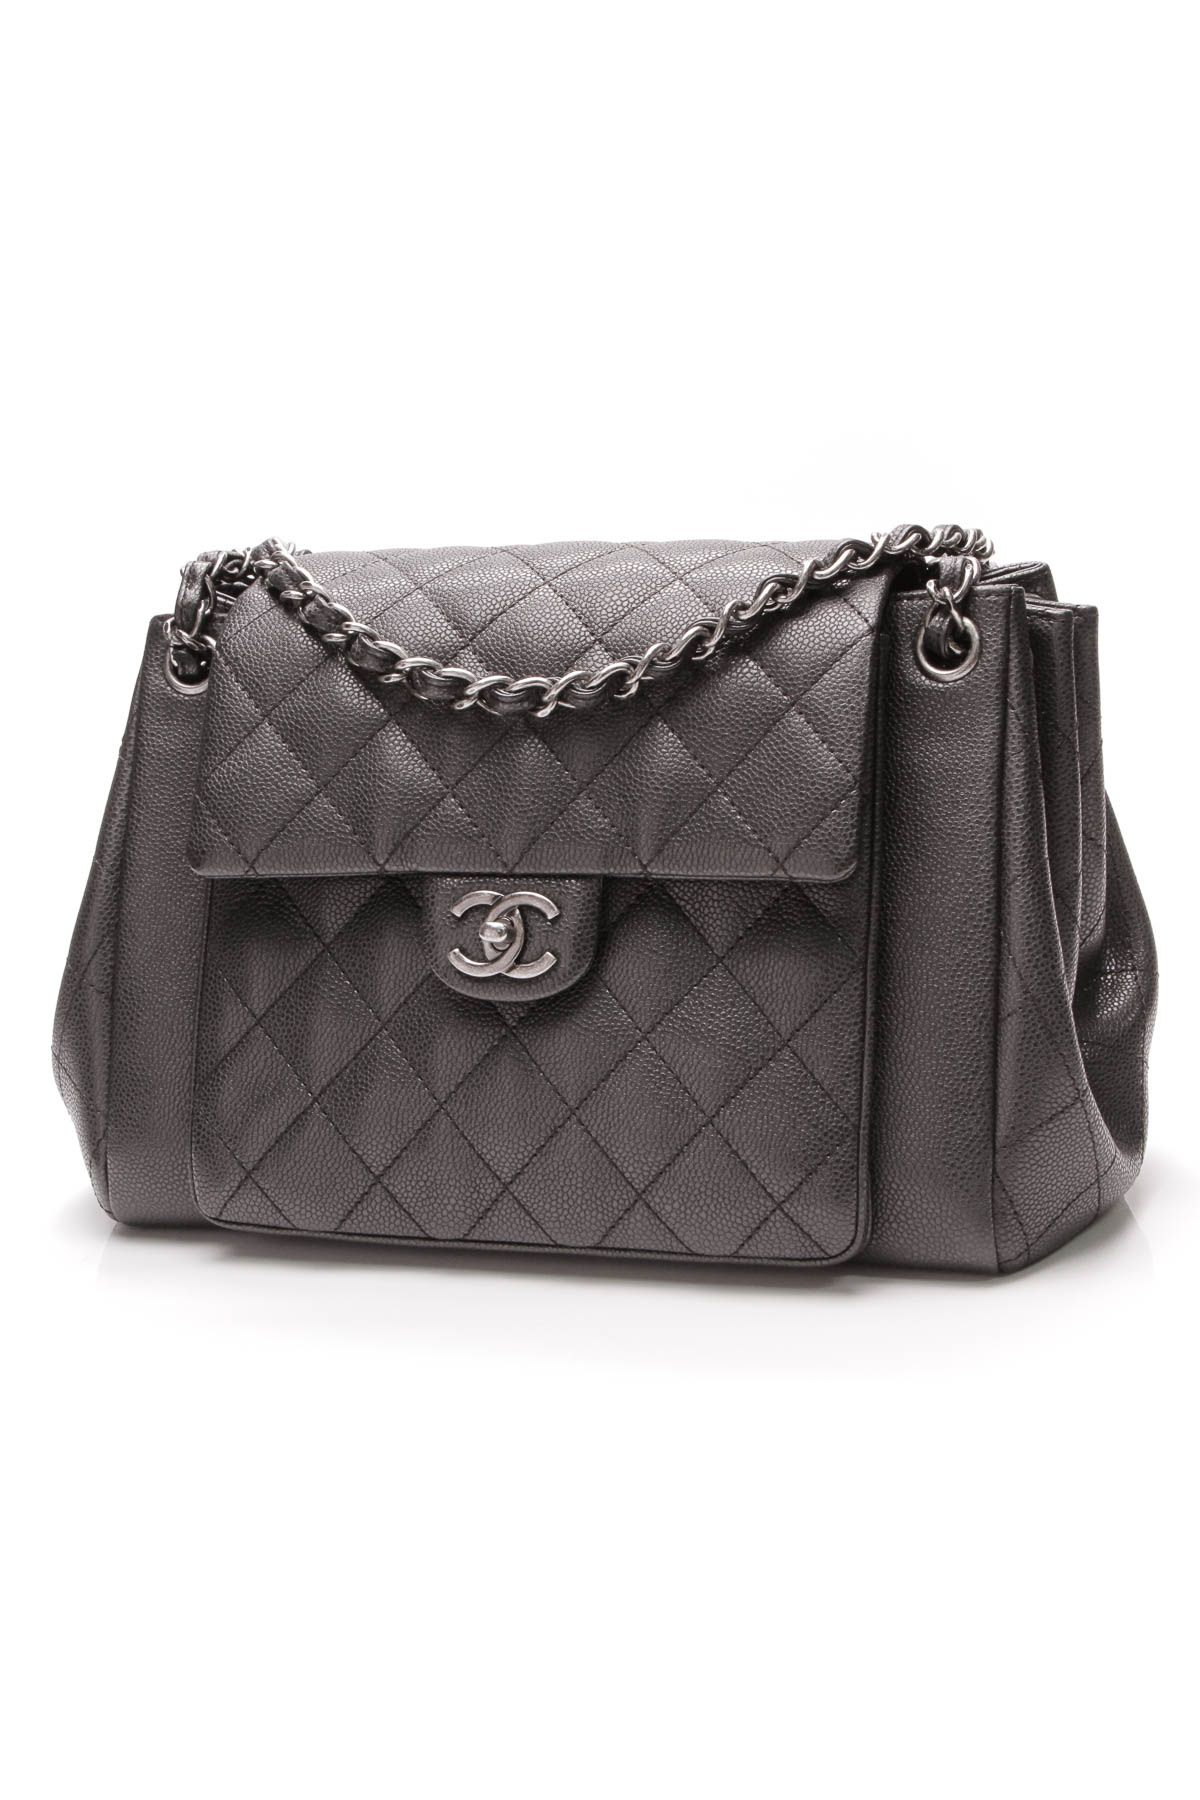 a7dbe155e3c4 Chanel Accordion Flap Bag - Black Caviar